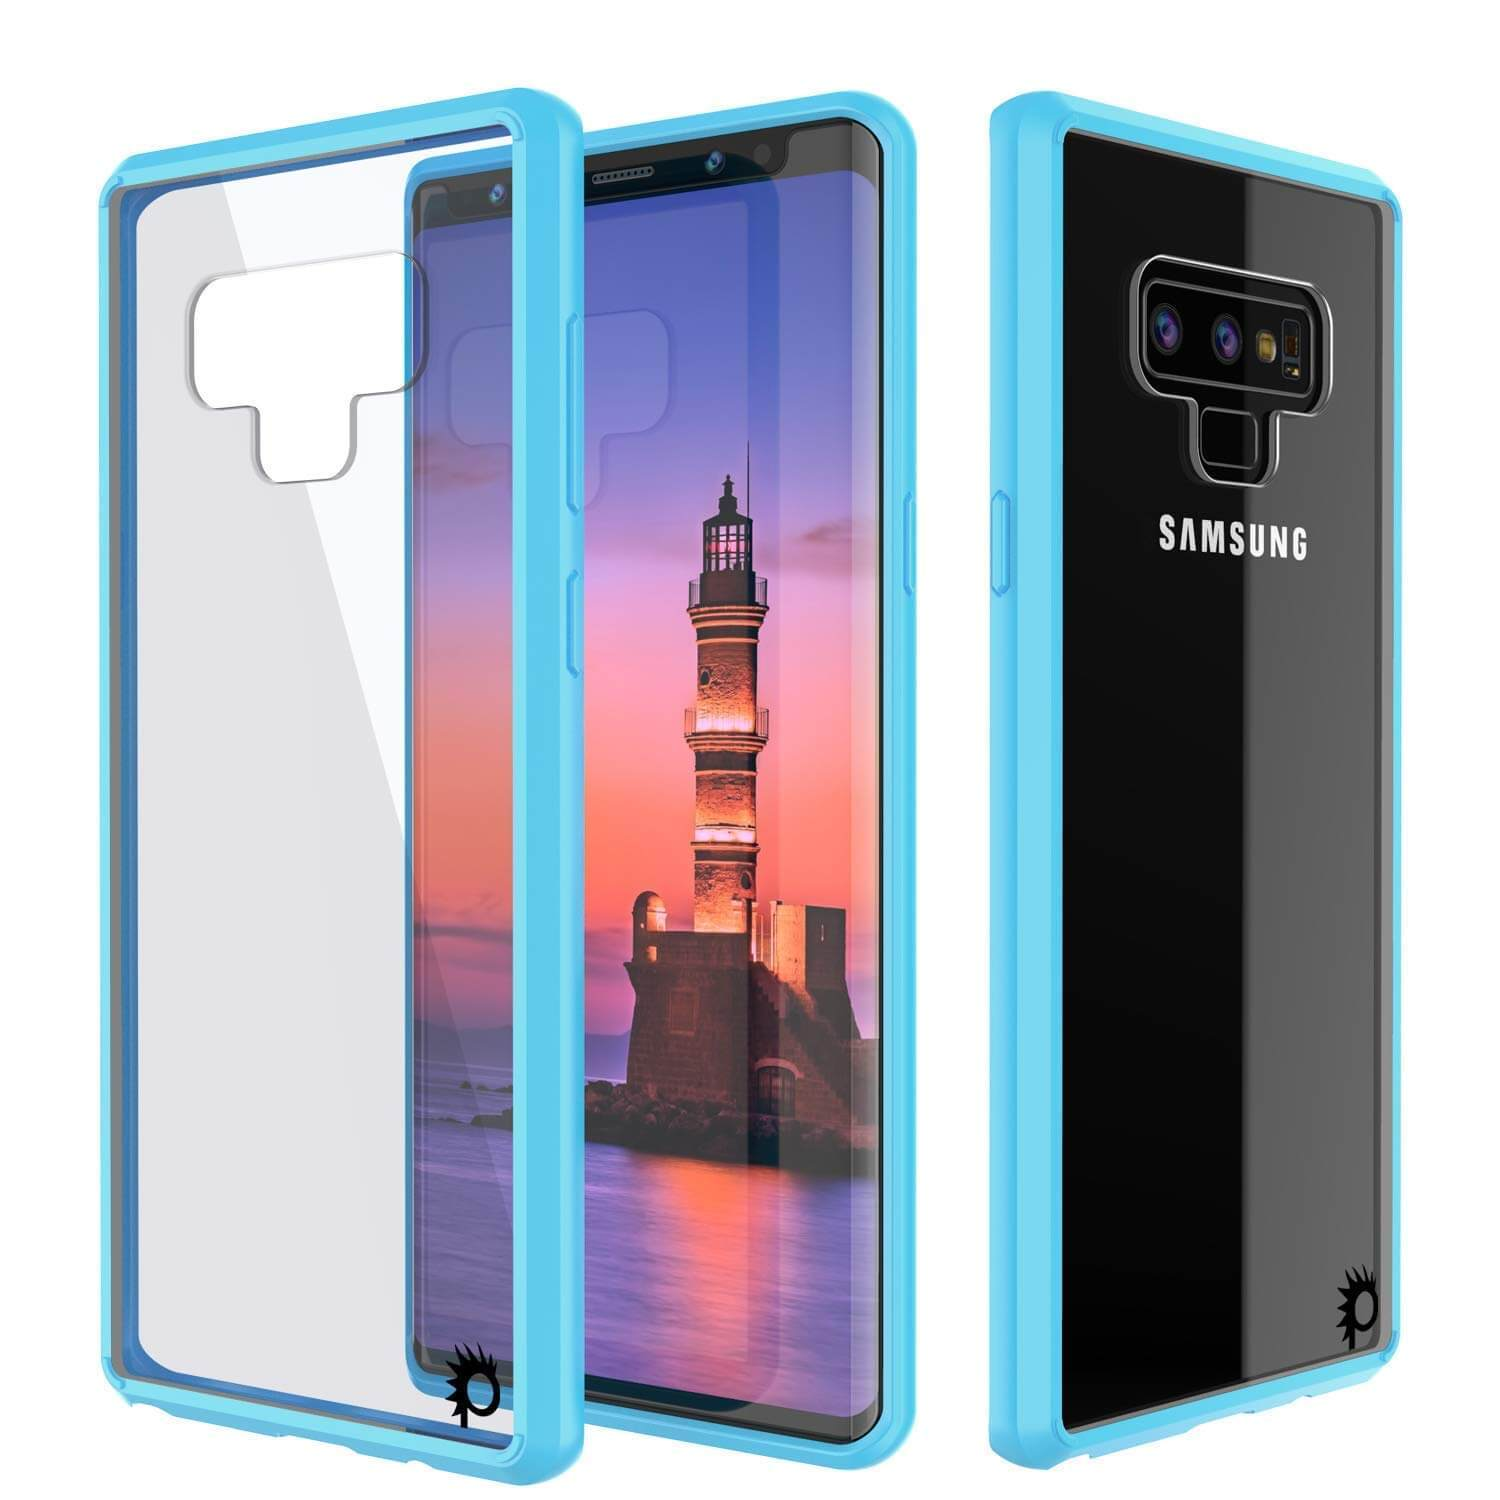 Galaxy Note 9 Case, PUNKcase [LUCID 2.0 Series] [Slim Fit] Armor Cover W/Integrated Anti-Shock System [Light Blue]